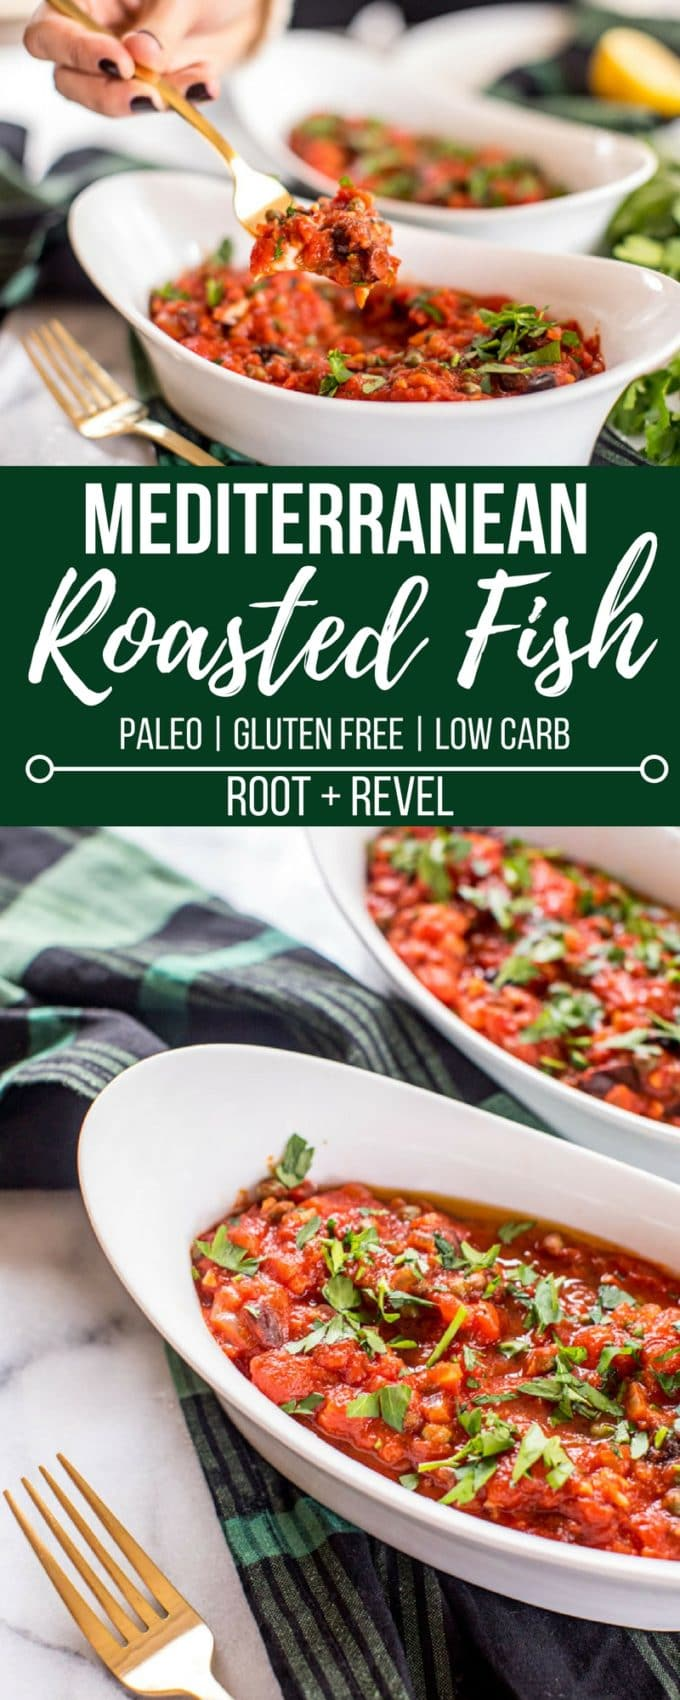 This quick and easy mackerel recipe is bursting with protein, omega 3s and Vitamin C, plus tastes of delicious Mediterranean flavors, AND it's made in 20 minutes or less! Canned mackerel is fresh, mild and so good for you.